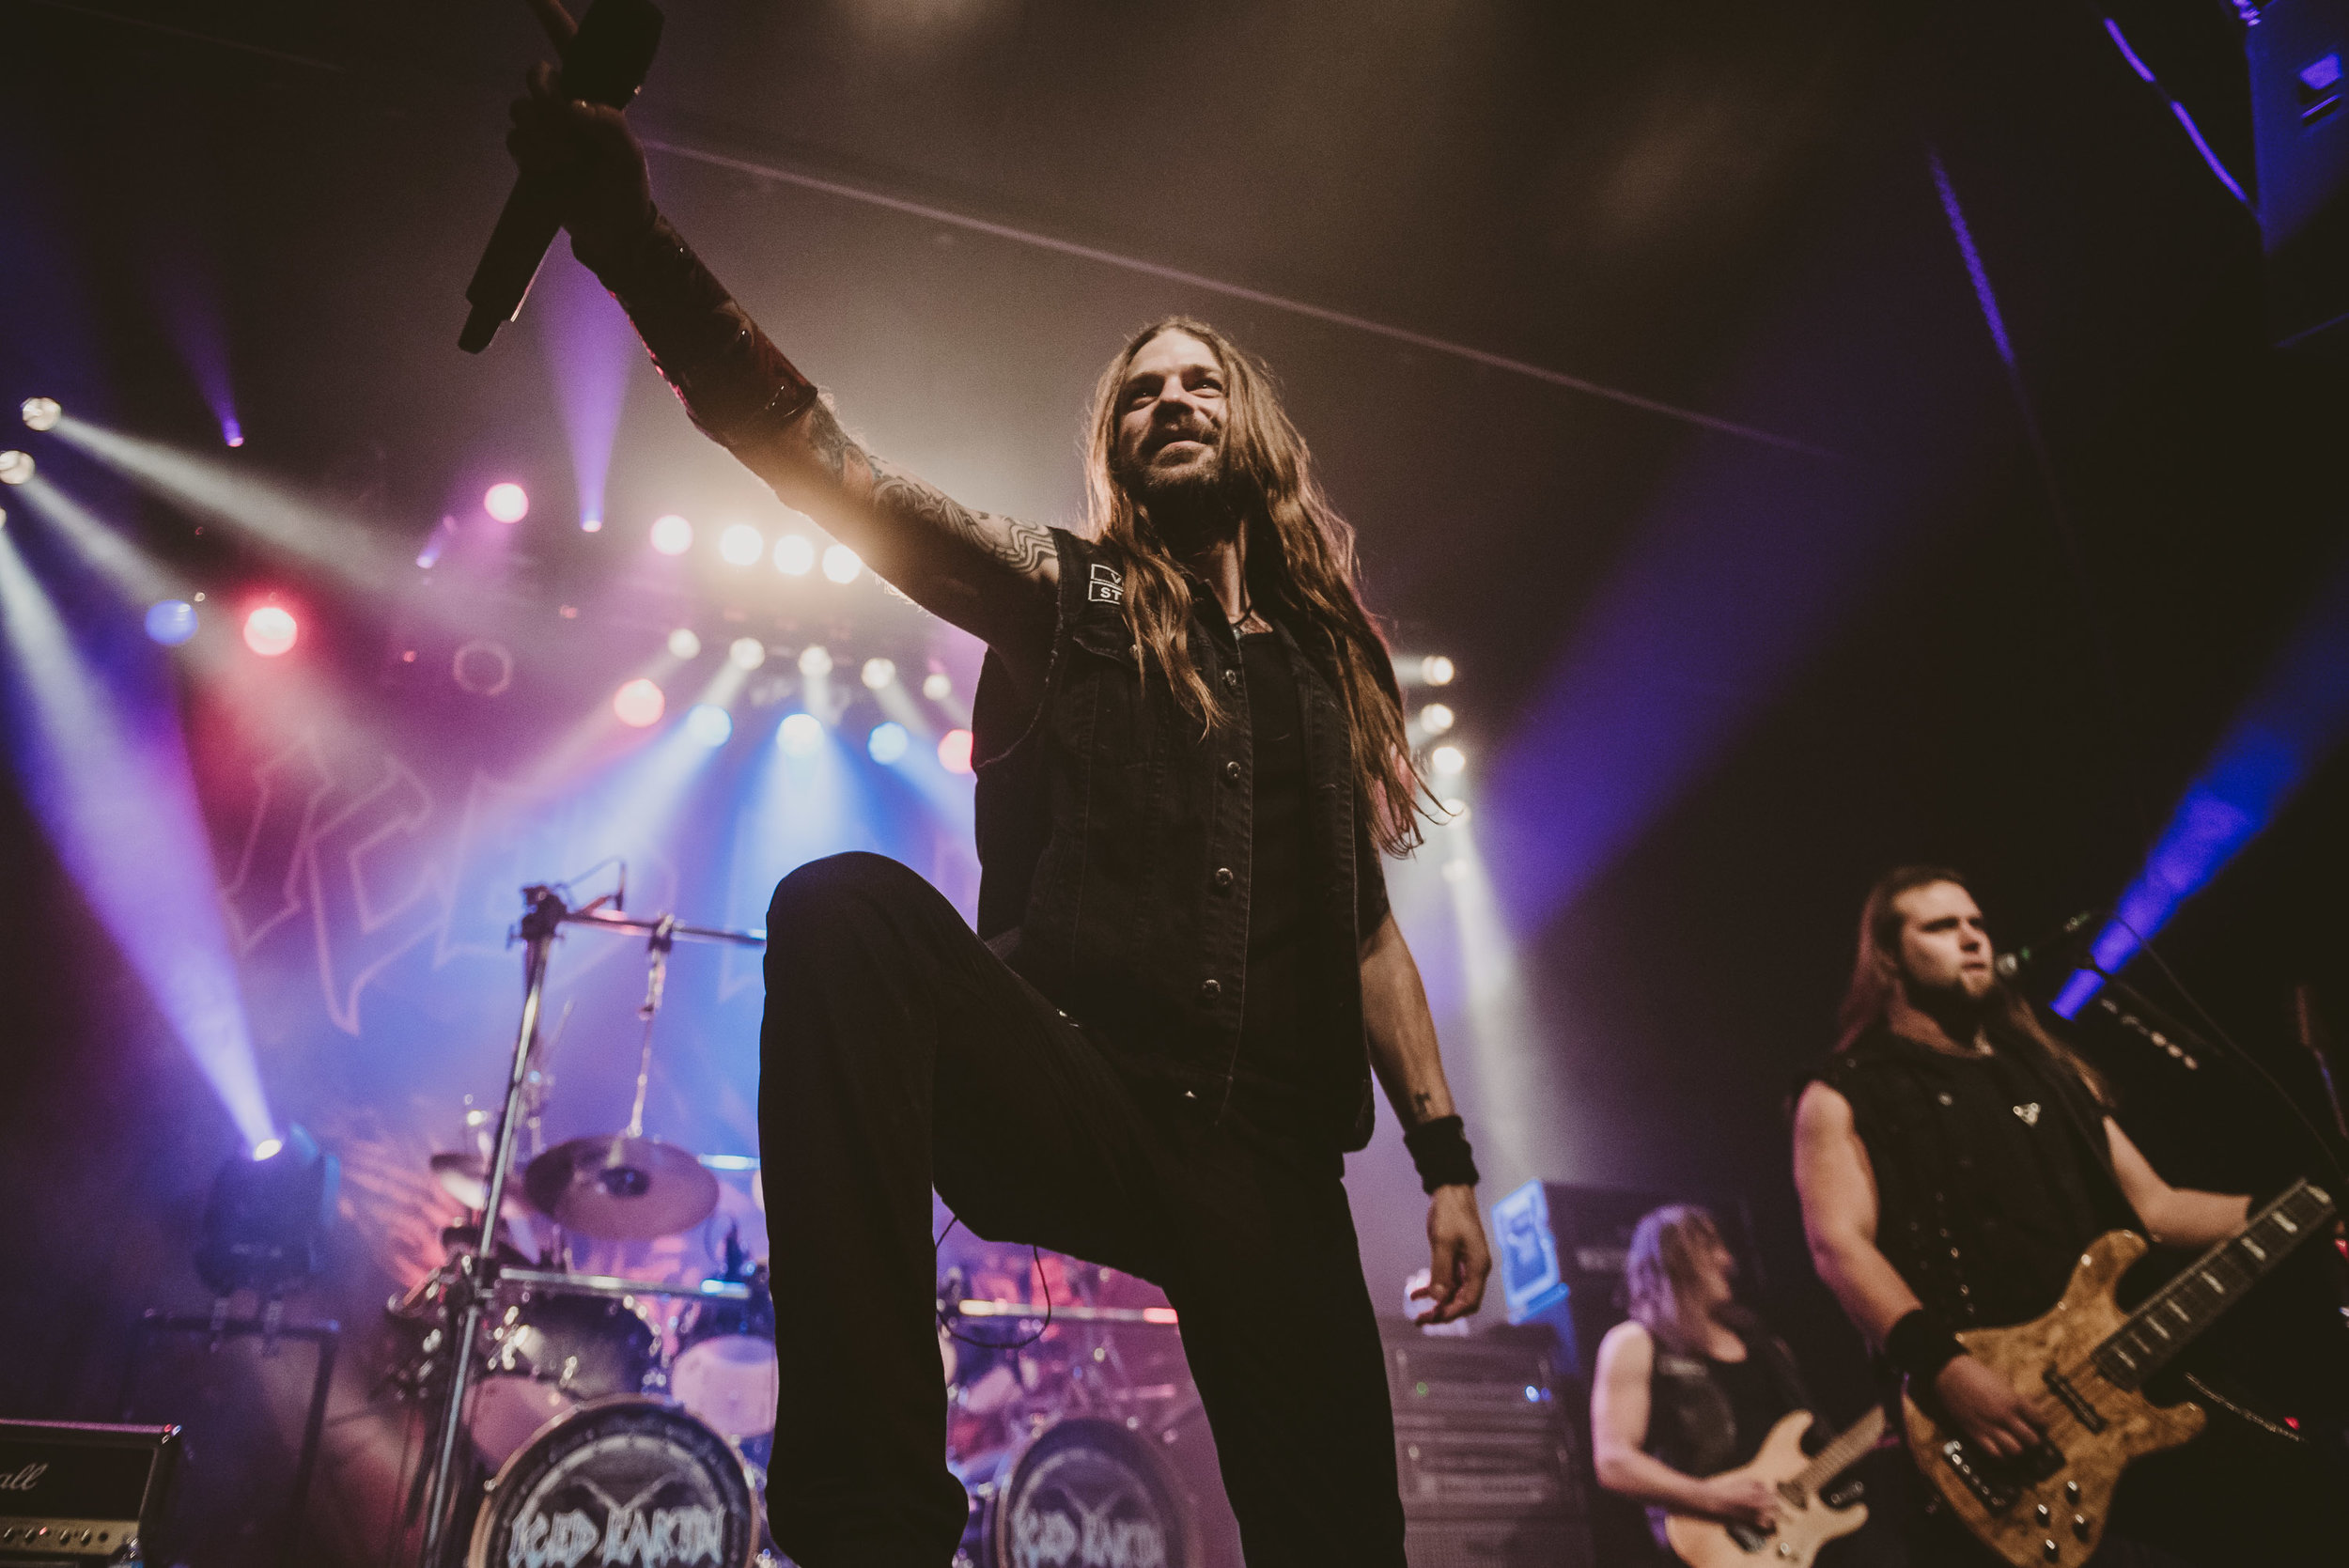 1_Iced_Earth-Rickshaw_Theatre-Timothy_Nguyen-20180304 (2 of 20).jpg